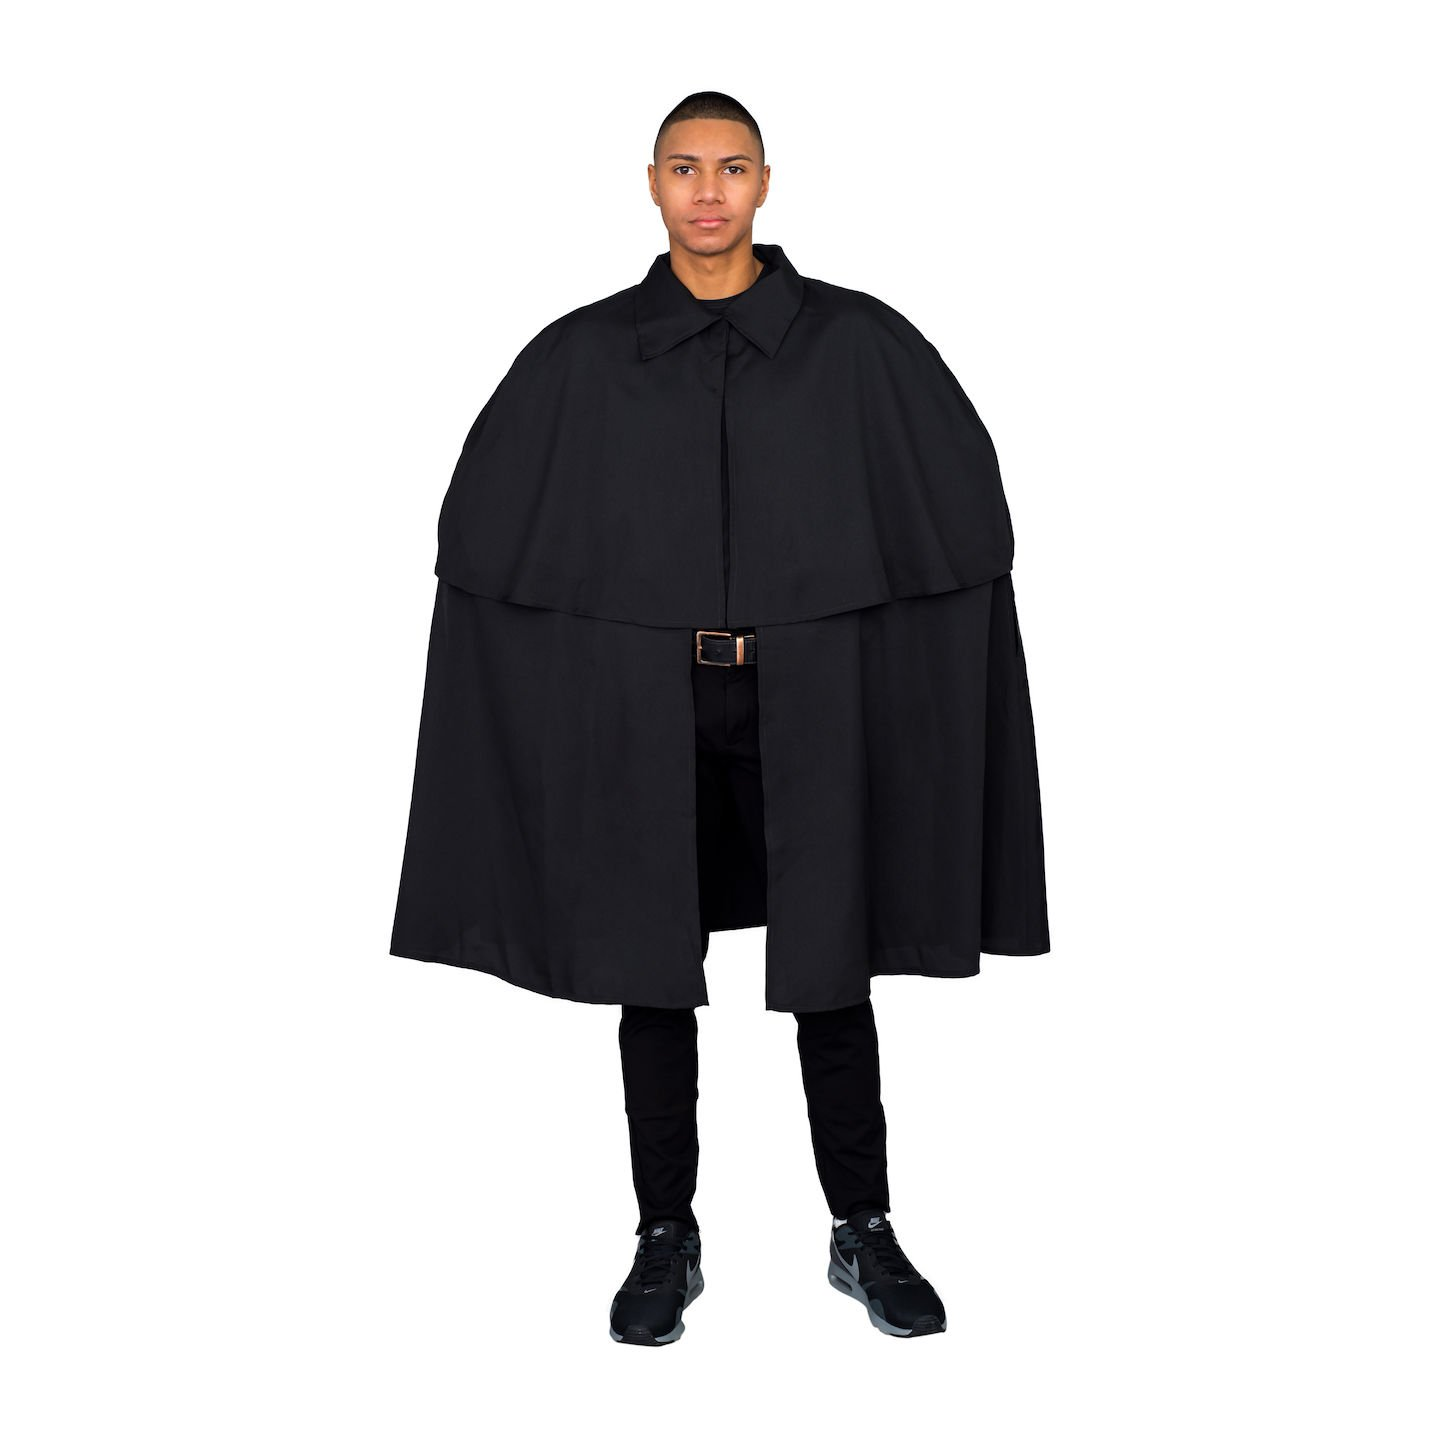 Men's Steampunk Jackets, Coats & Suits Costume Agent Victorian Era Sherlock Detective Cloak Cape Coat $29.95 AT vintagedancer.com